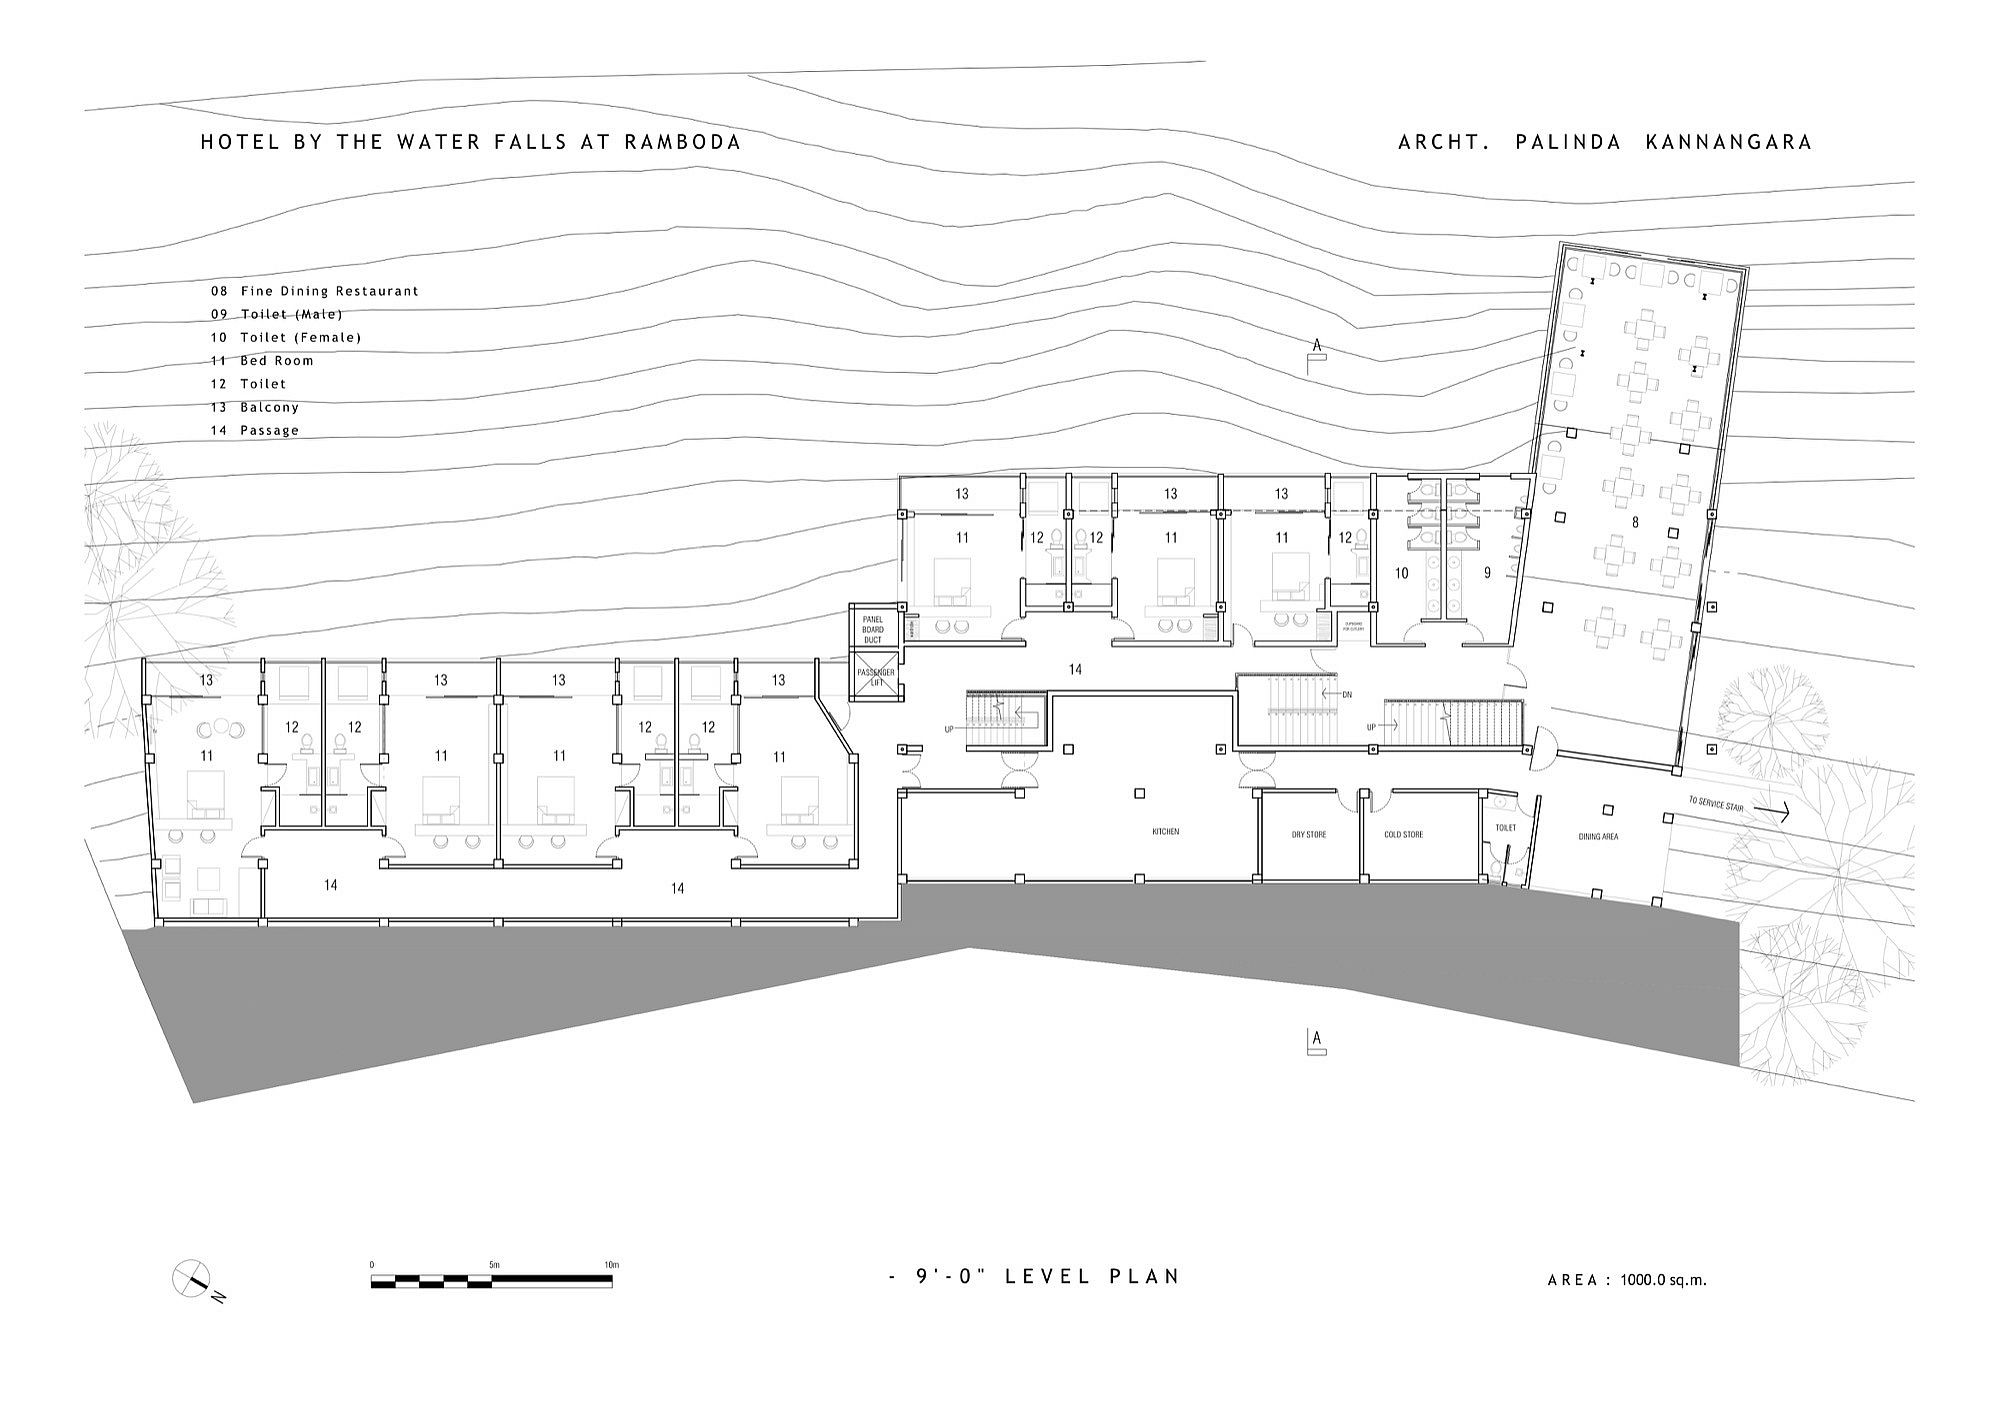 Restaurant-level-floor-plan-of-Hotel-by-the-Water-Falls-at-Ramboda